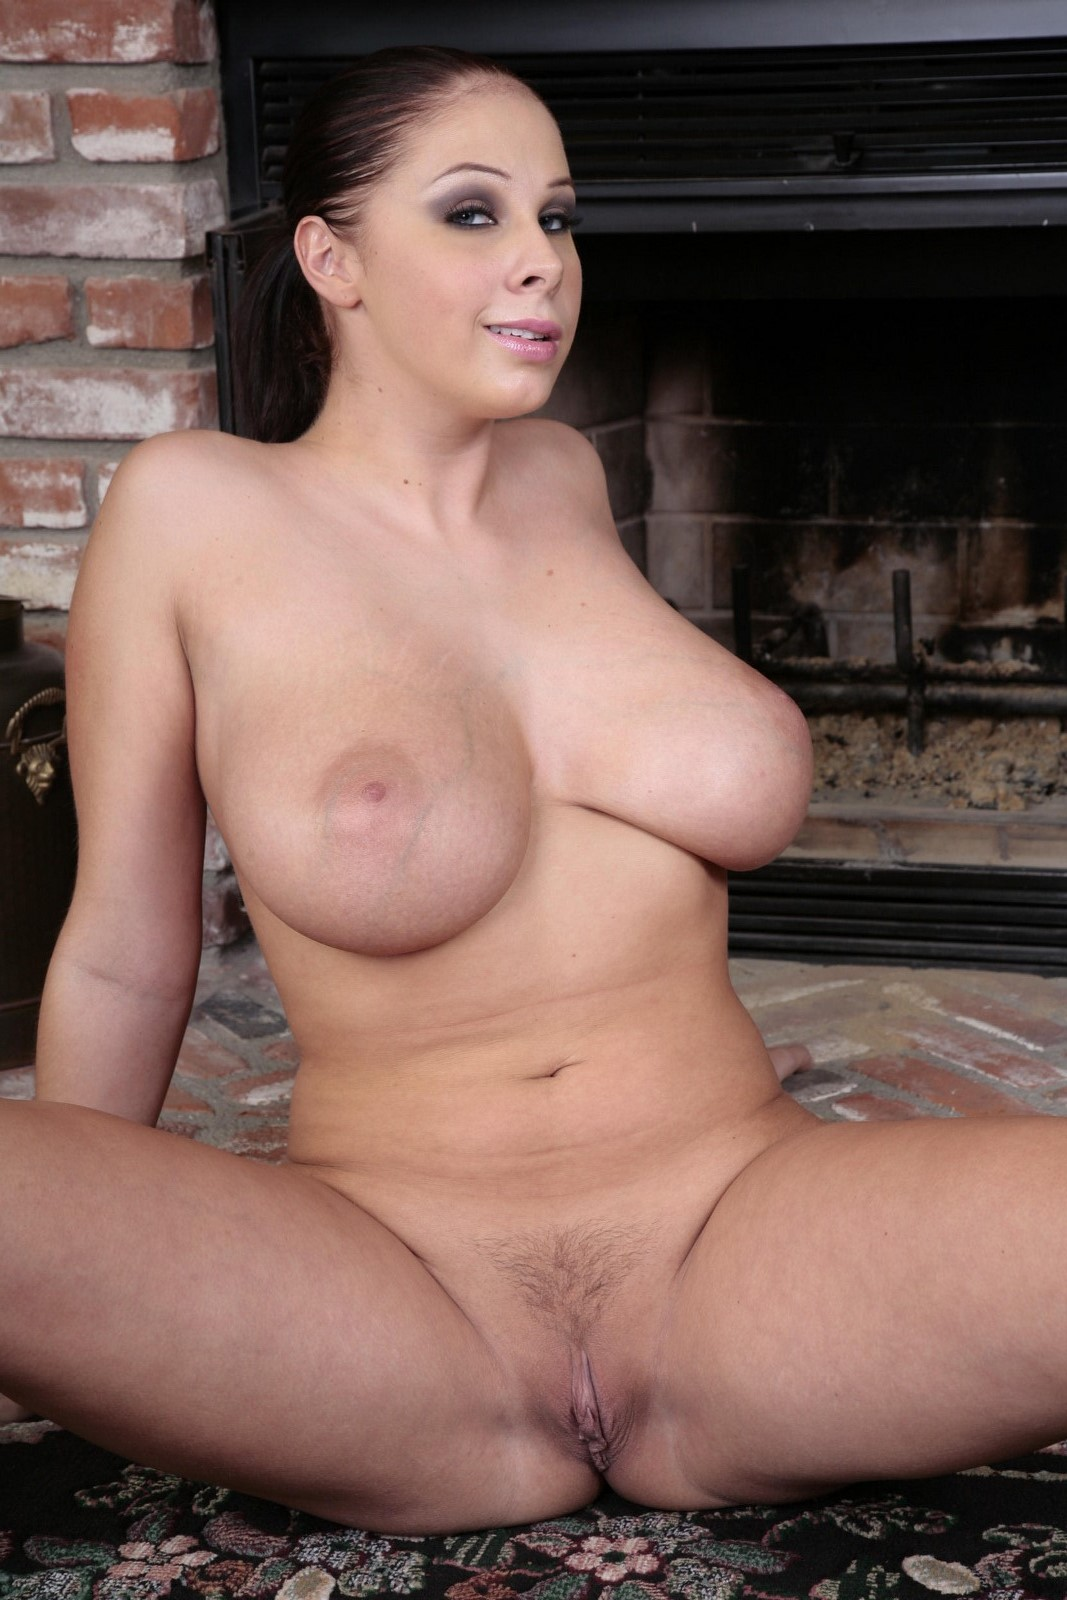 gianna-michaels-solo-nude